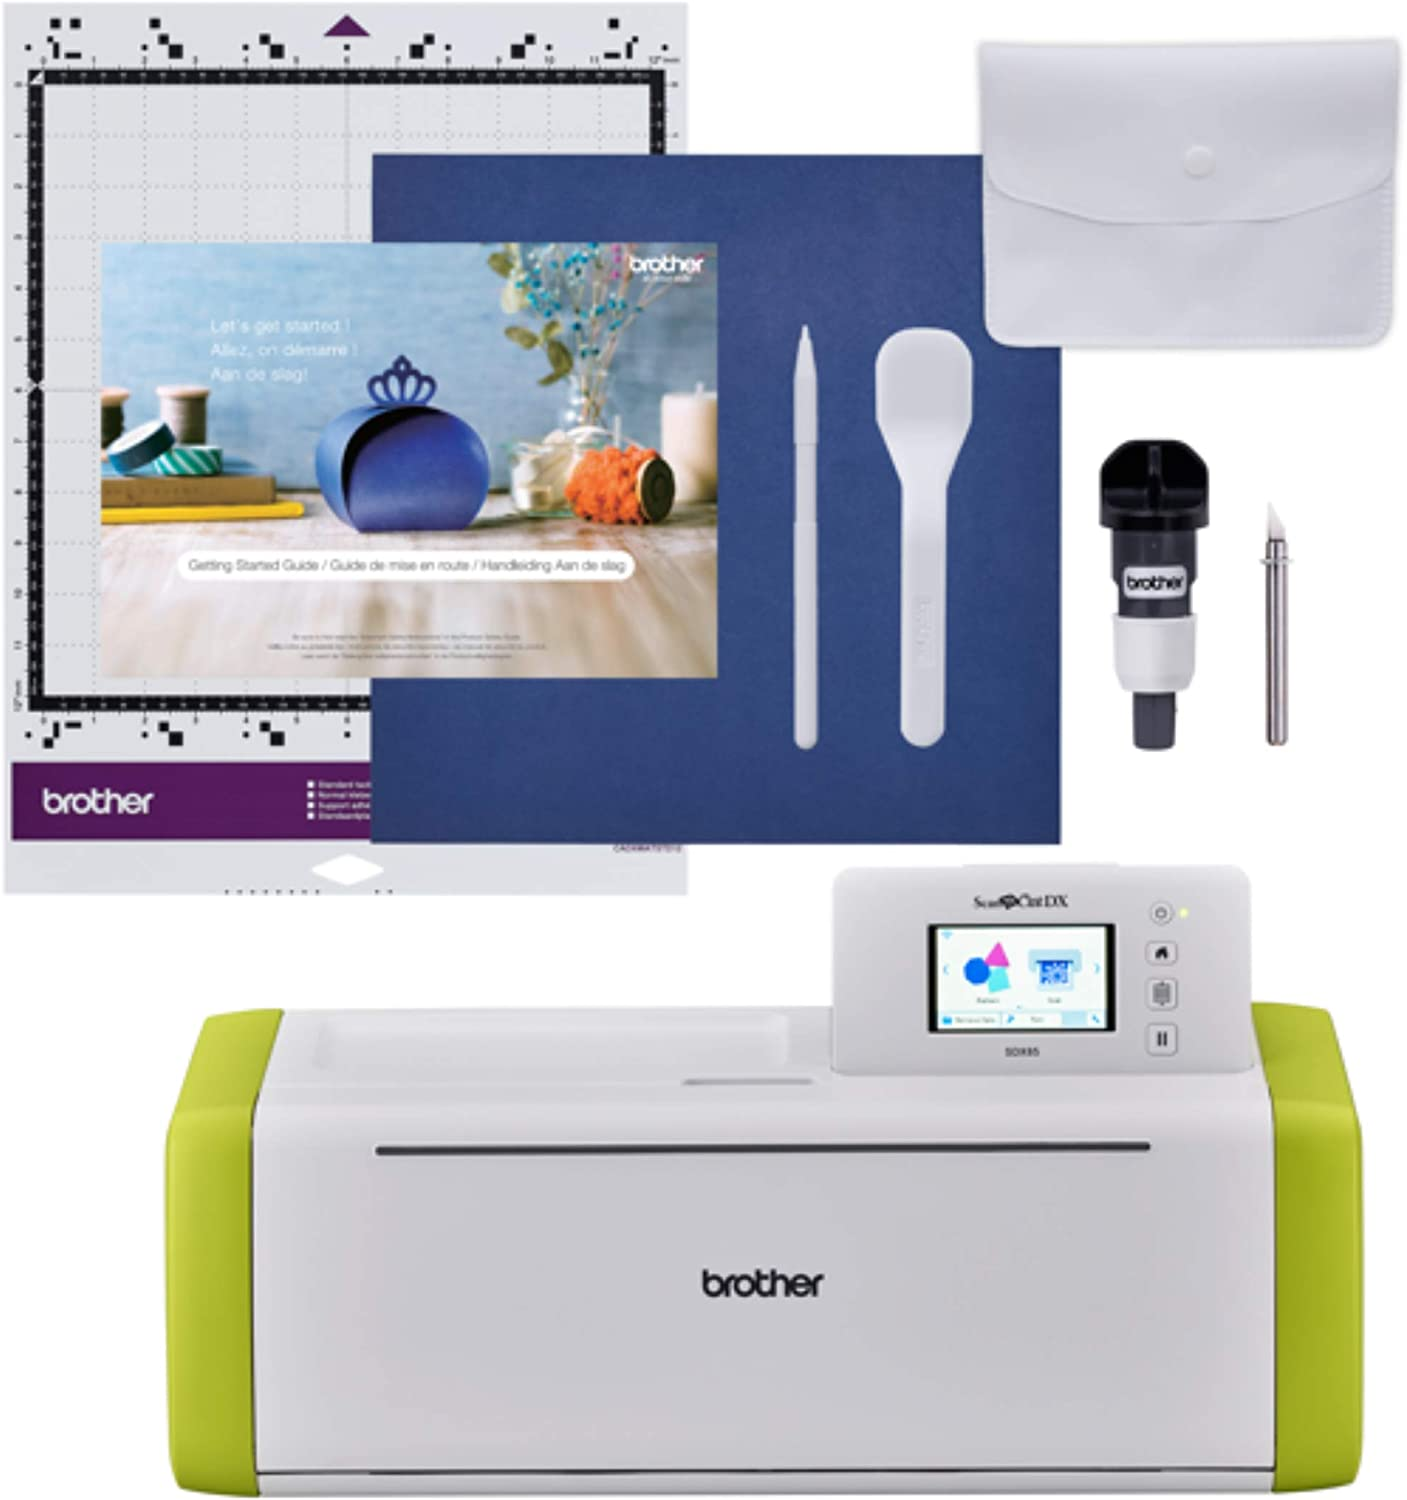 Brother ScanNCut SDX85 Electronic DIY Cutting Machine with Scanner, Make Vinyl Wall Art, Appliques, Homemade Cards and More with 251 Included Patterns